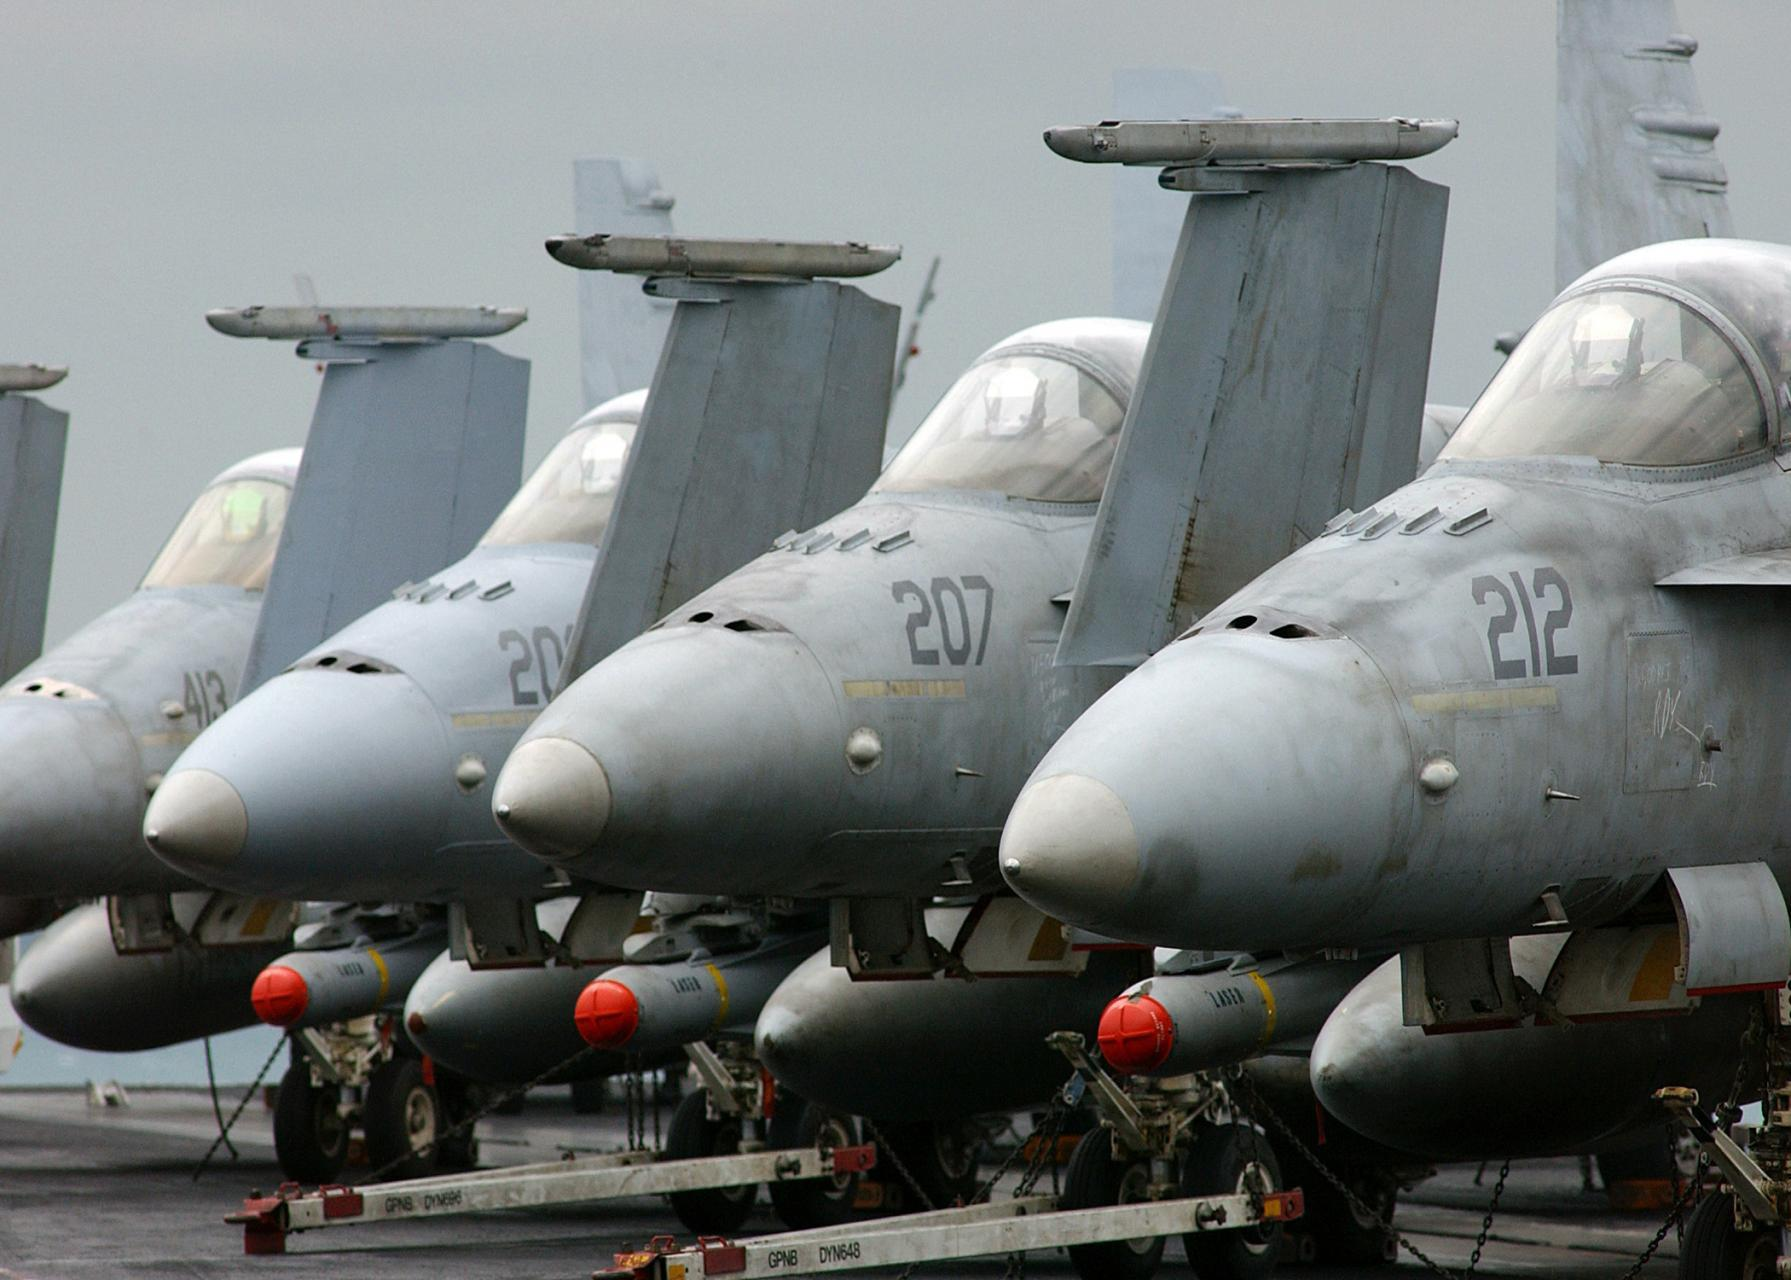 Aircraft vehicles F-18 hornet